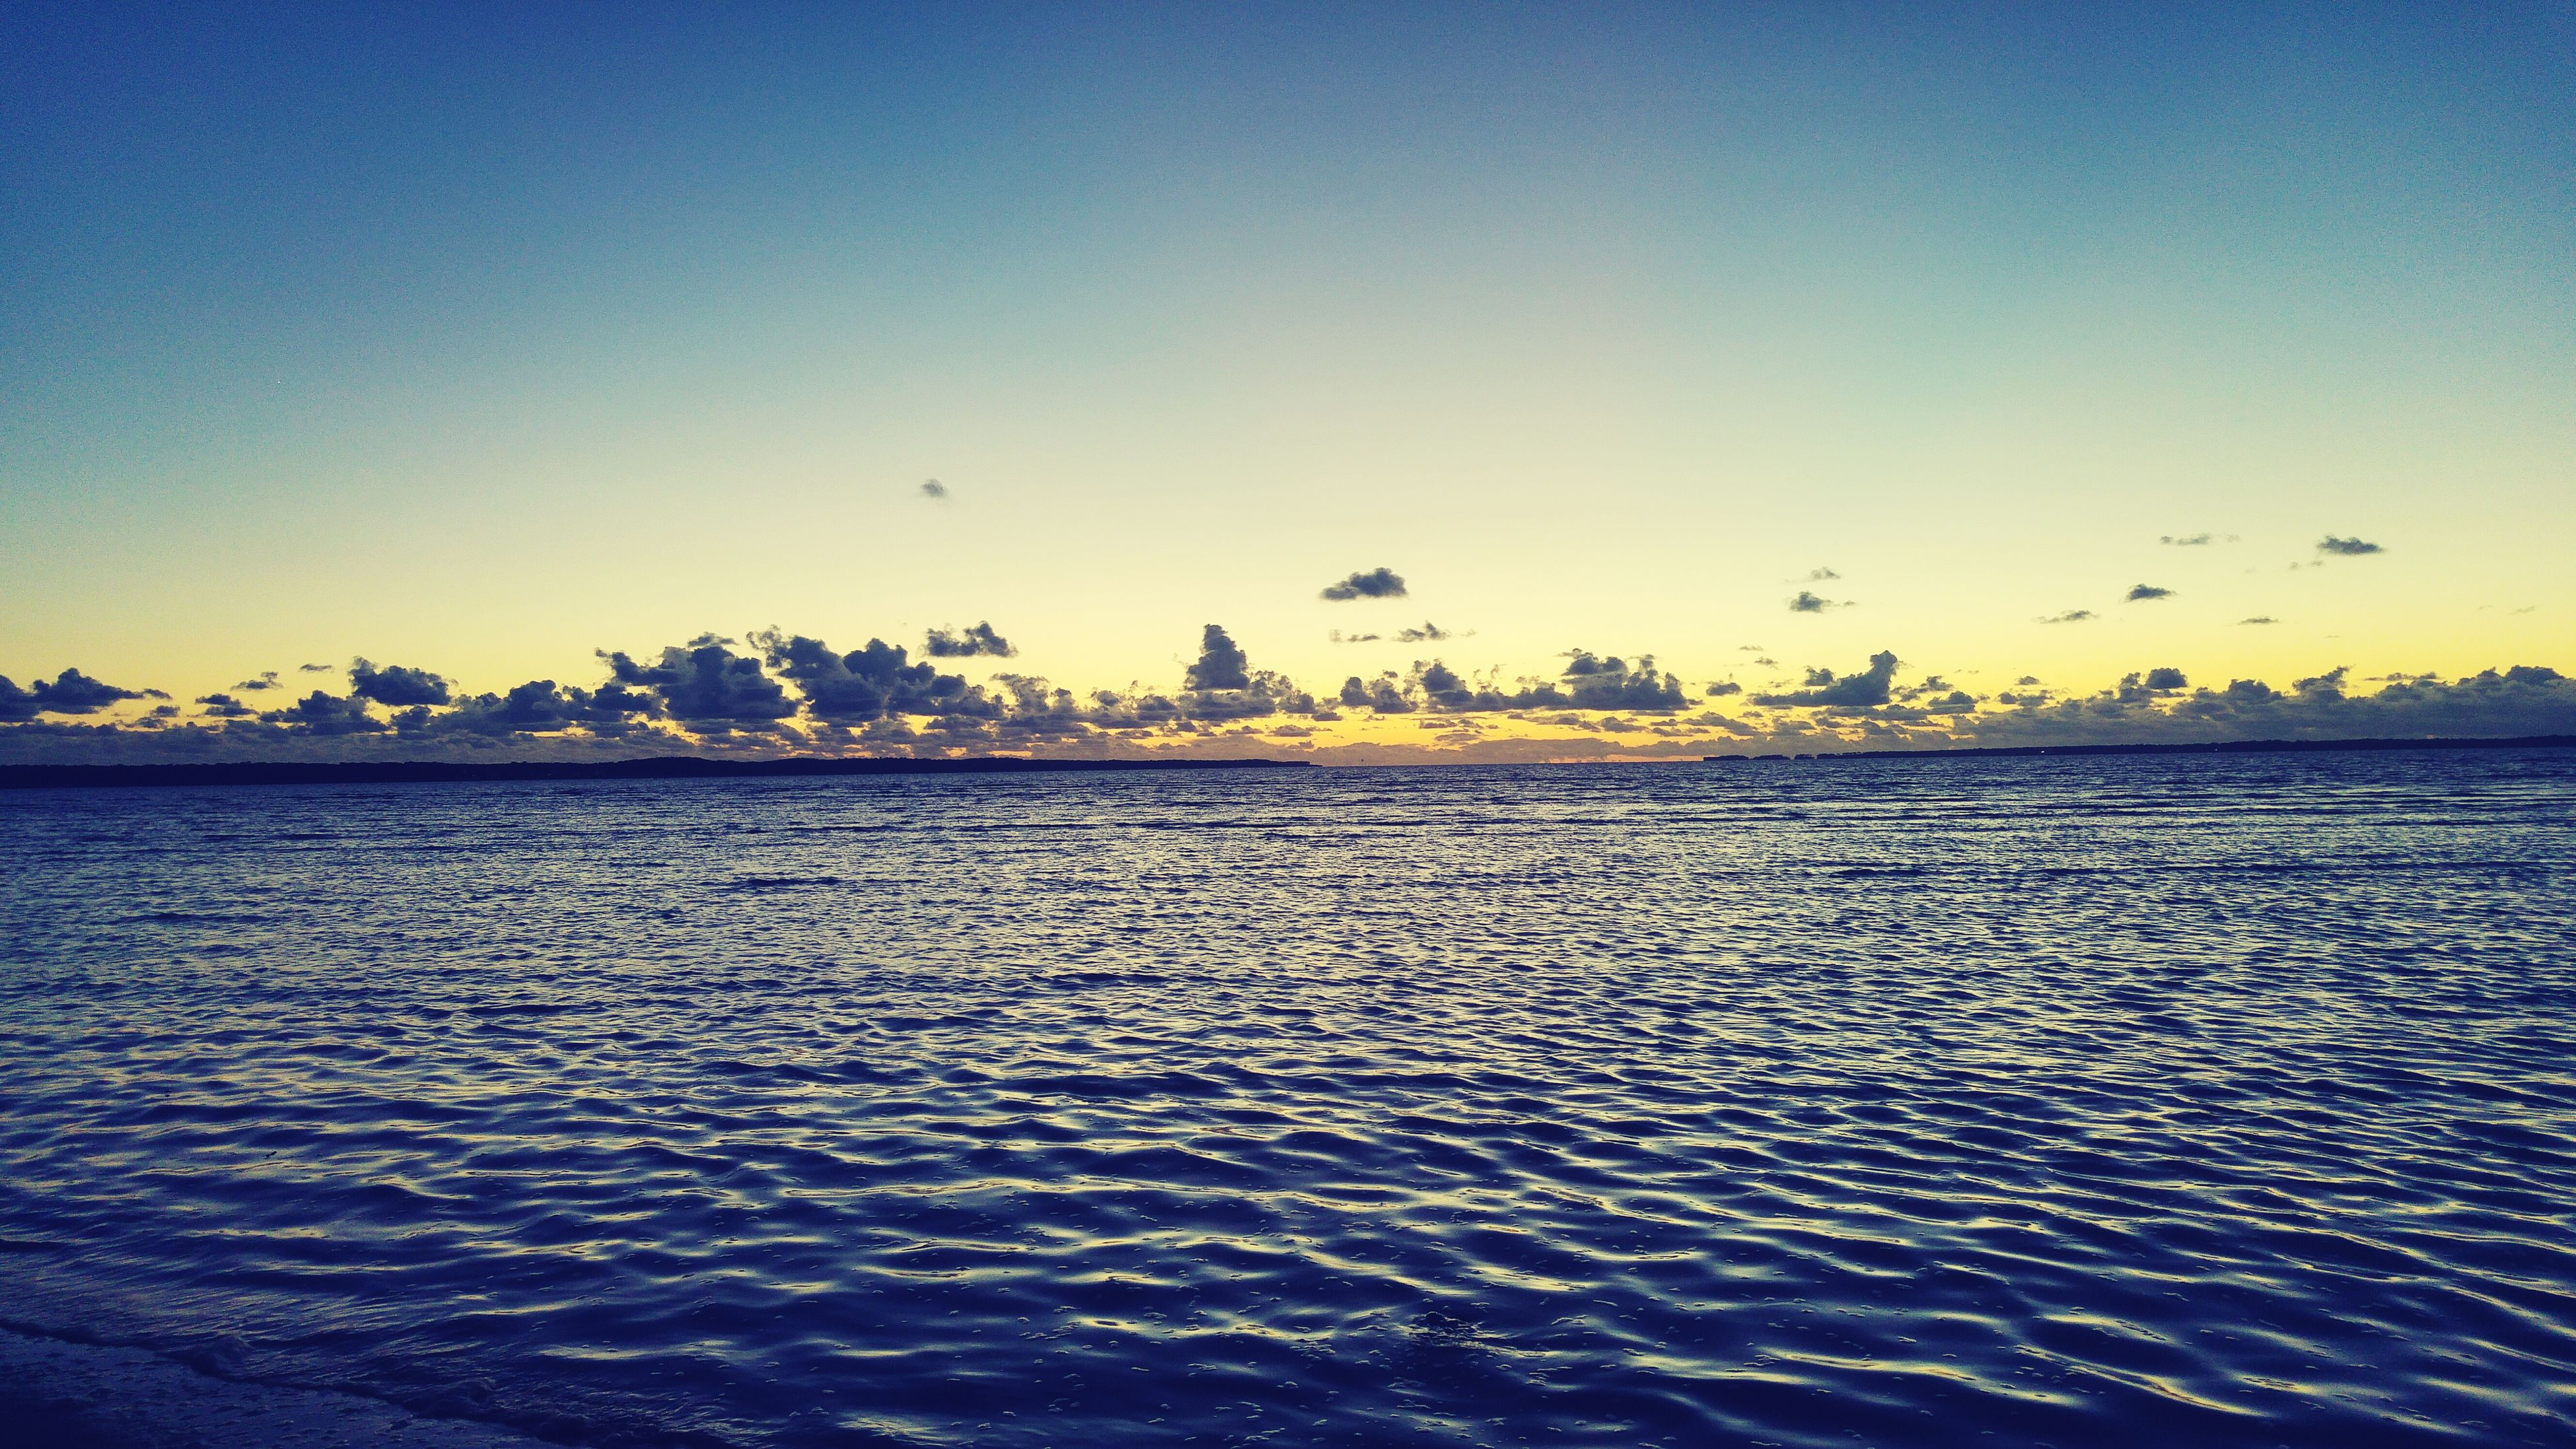 water, beach, sea, clear sky, sky, sand, beauty in nature, outdoors, no people, nature, sunset, architecture, building exterior, day, built structure, city, tranquility, scenics, cityscape